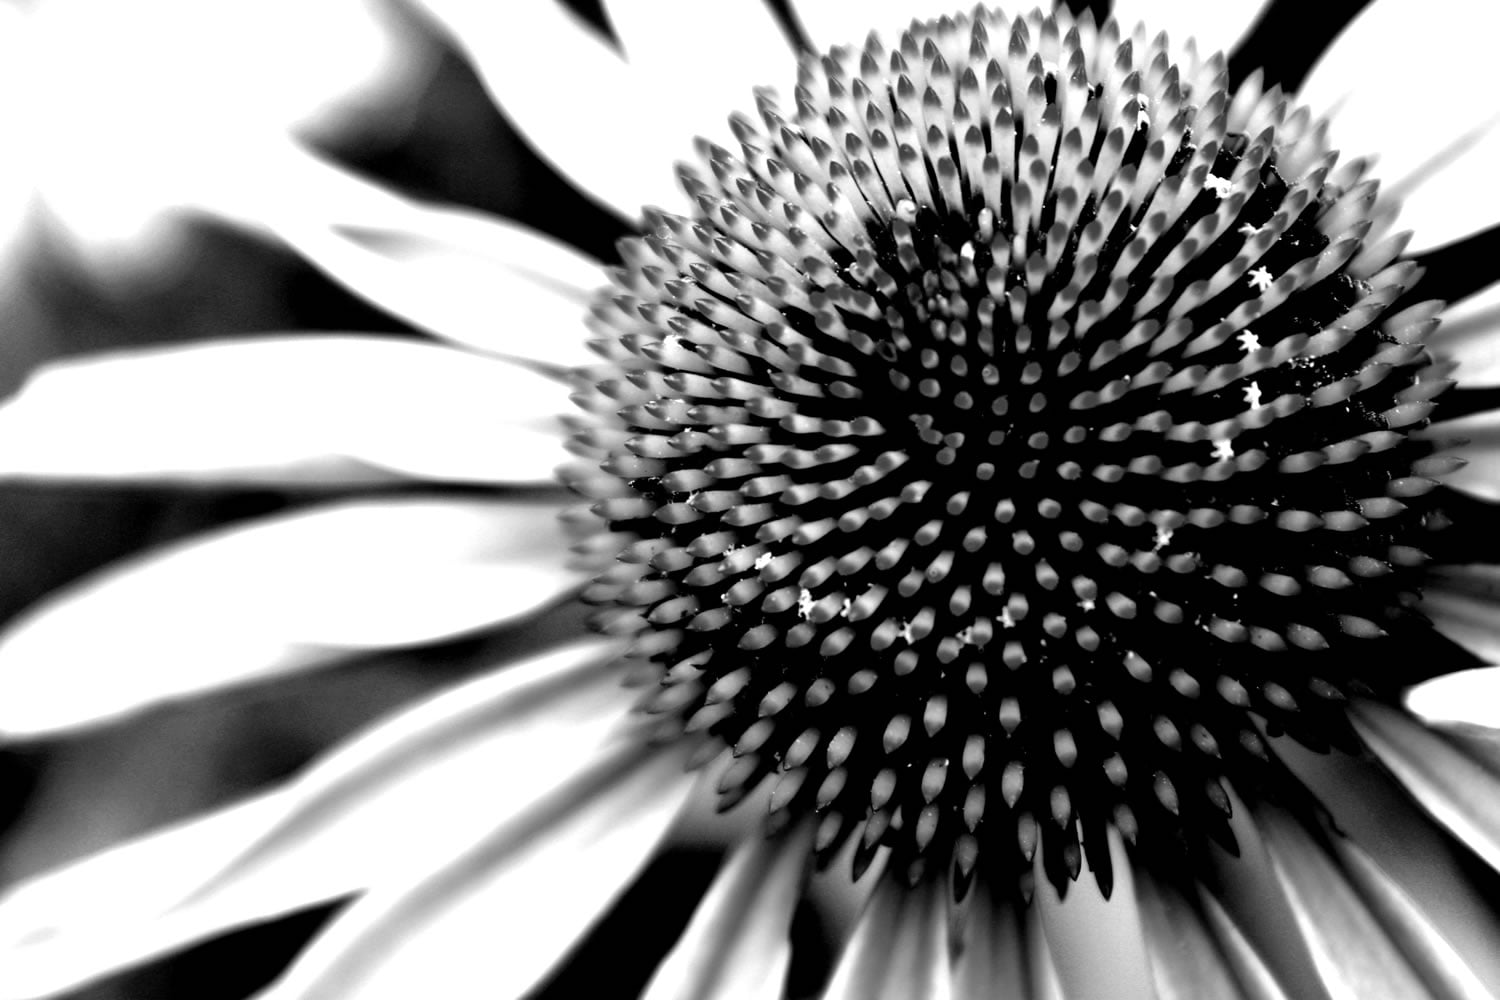 The cone flowers in summer have such a strong graphic shape, I thought that this image translated well to high contrast black and white image. This was taken in my garden last year.